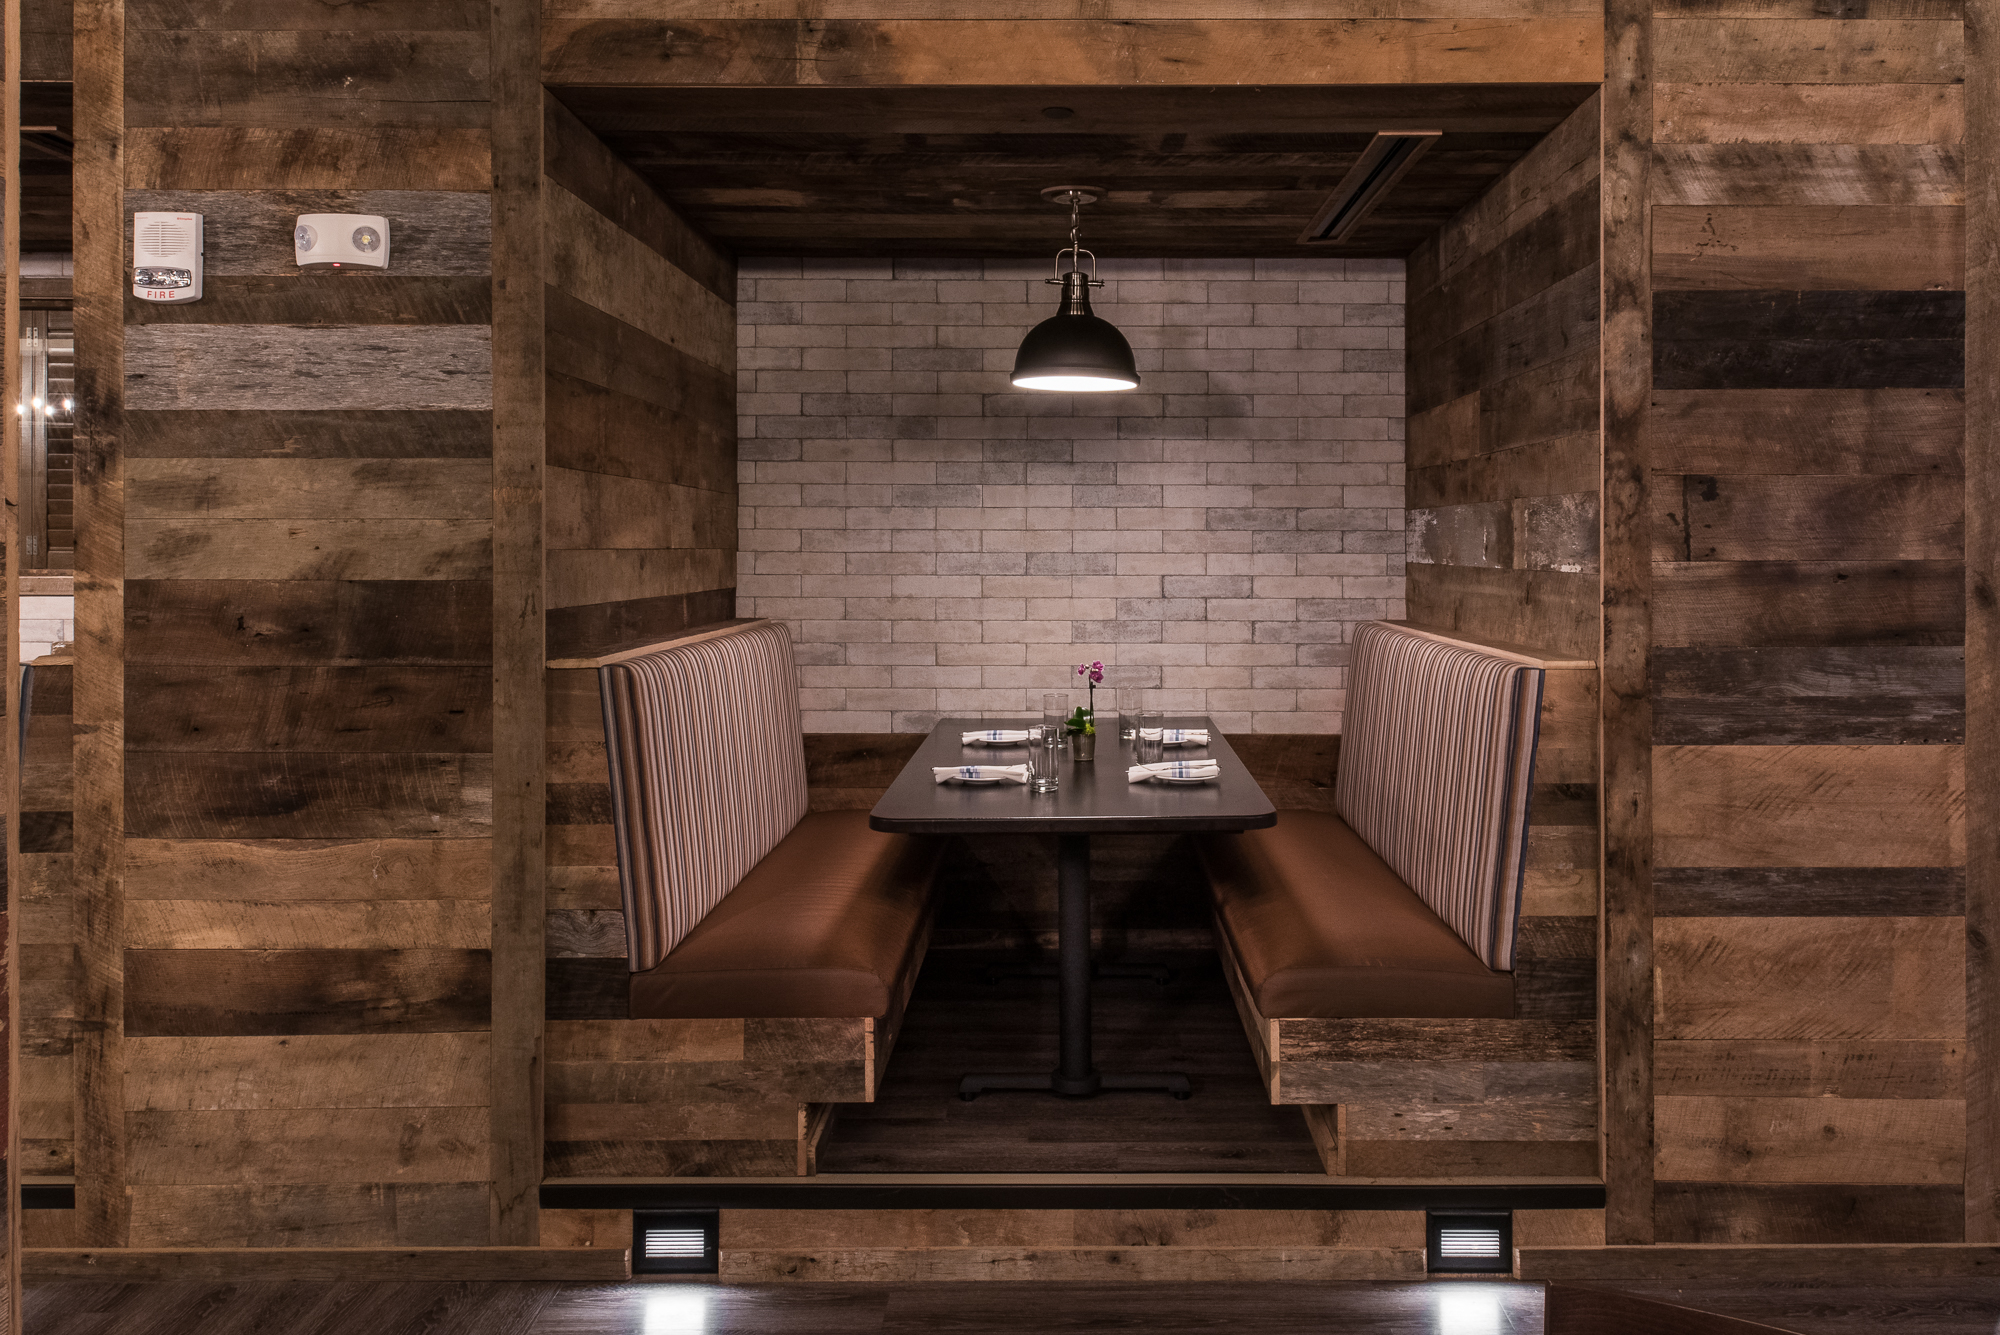 Micamy Design Studio_Interior Design_River and Post_Restaurant_Rooftop_Bar_Industrial_Rustic_Coastal_Riverside_Reclaimed Wood_Blog Style_Styling Accessories_Booth_Cocktails (2).jpg